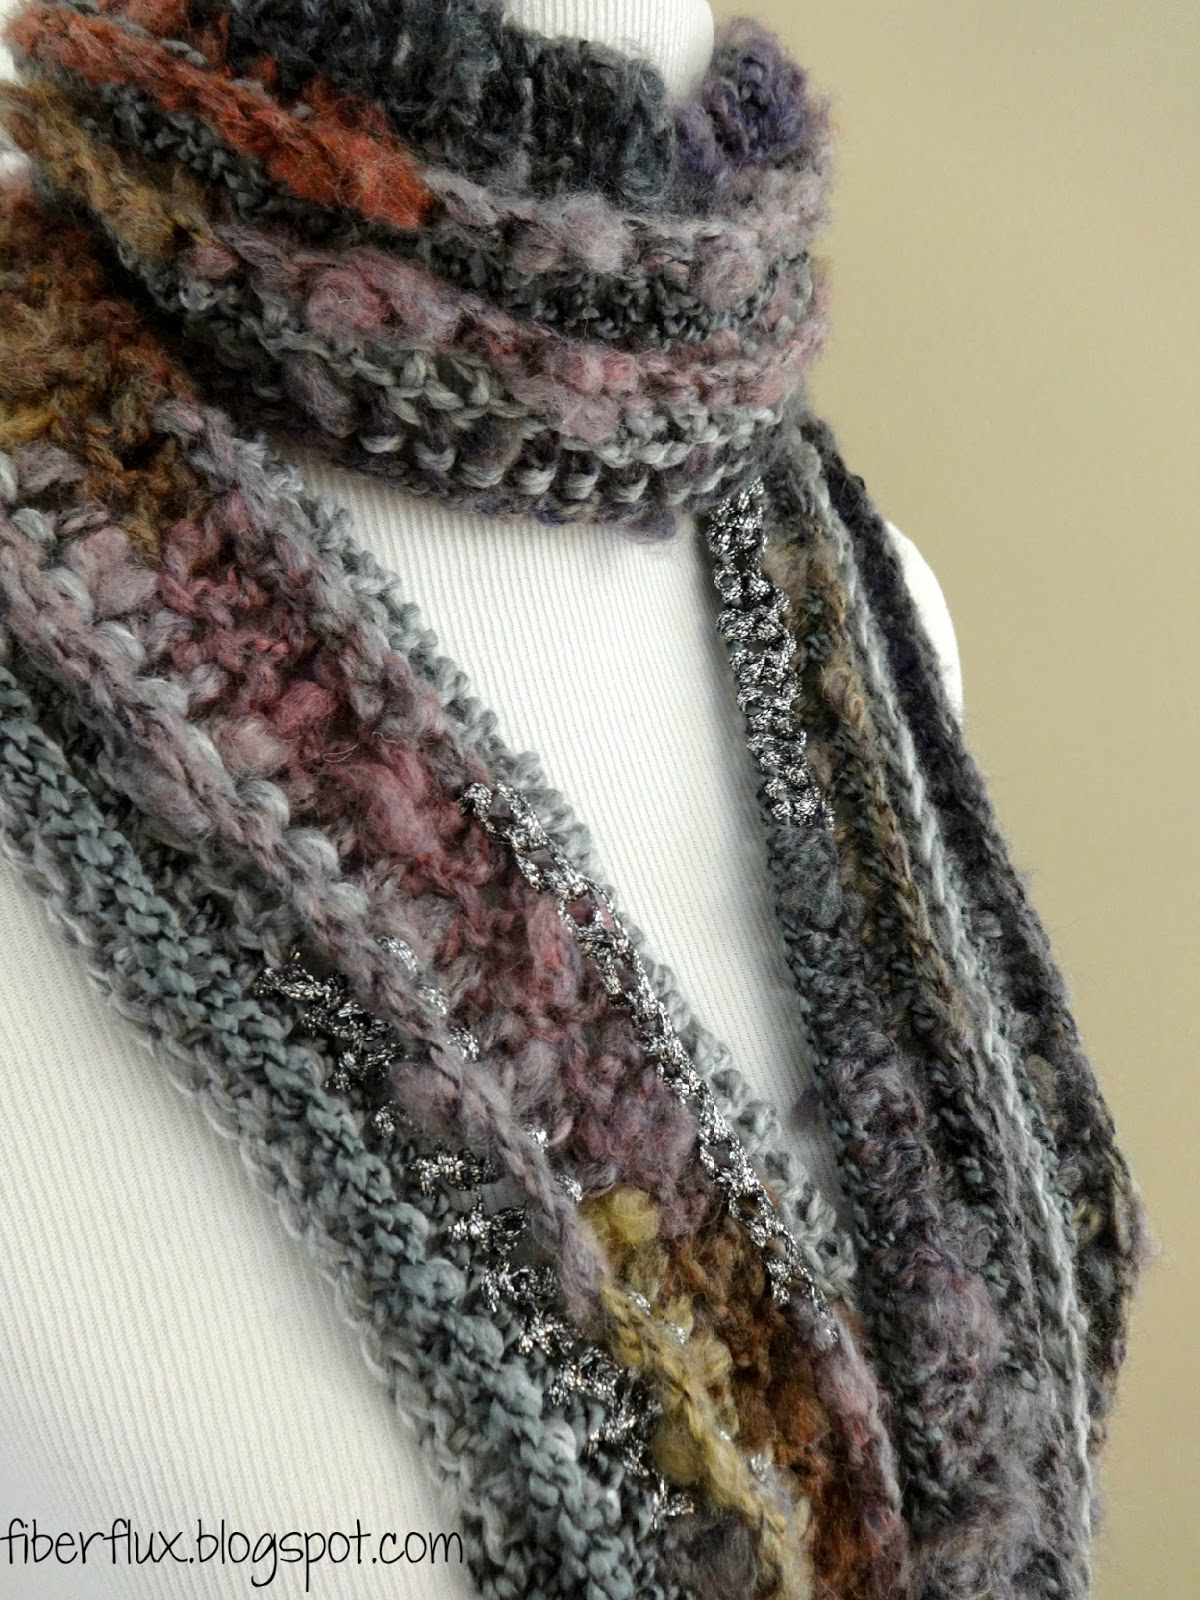 ... dust scarf is an elegant and artsy scarf that is crocheted lengthwise